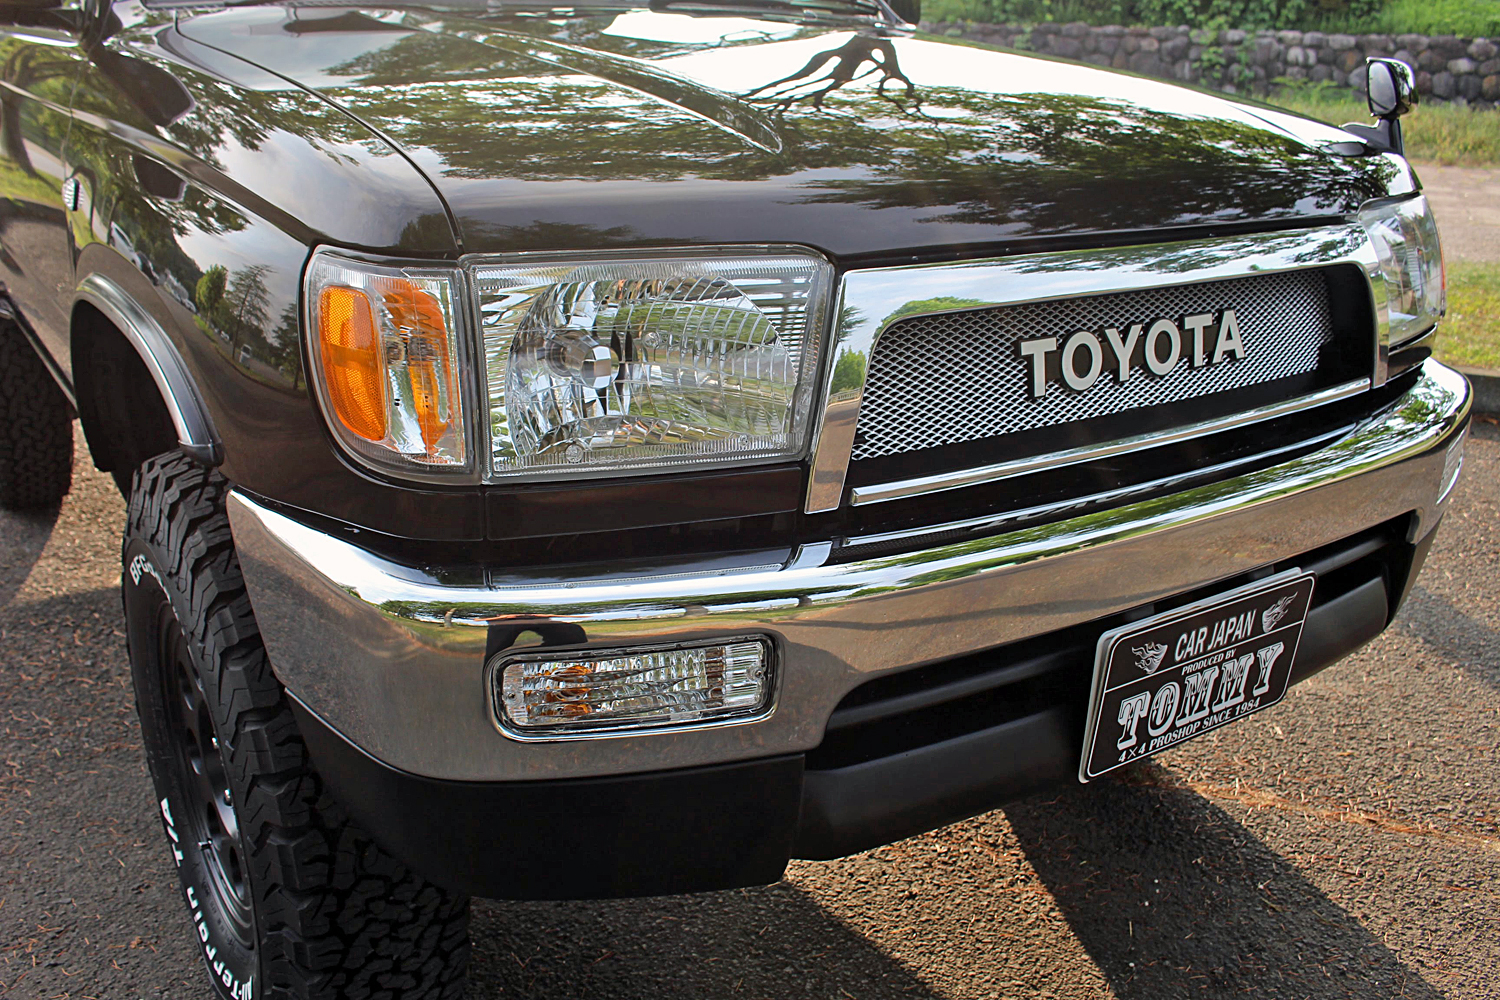 rzn185Hiluxsurf Dark Brown Metallic Narrow costom-fukudasama11